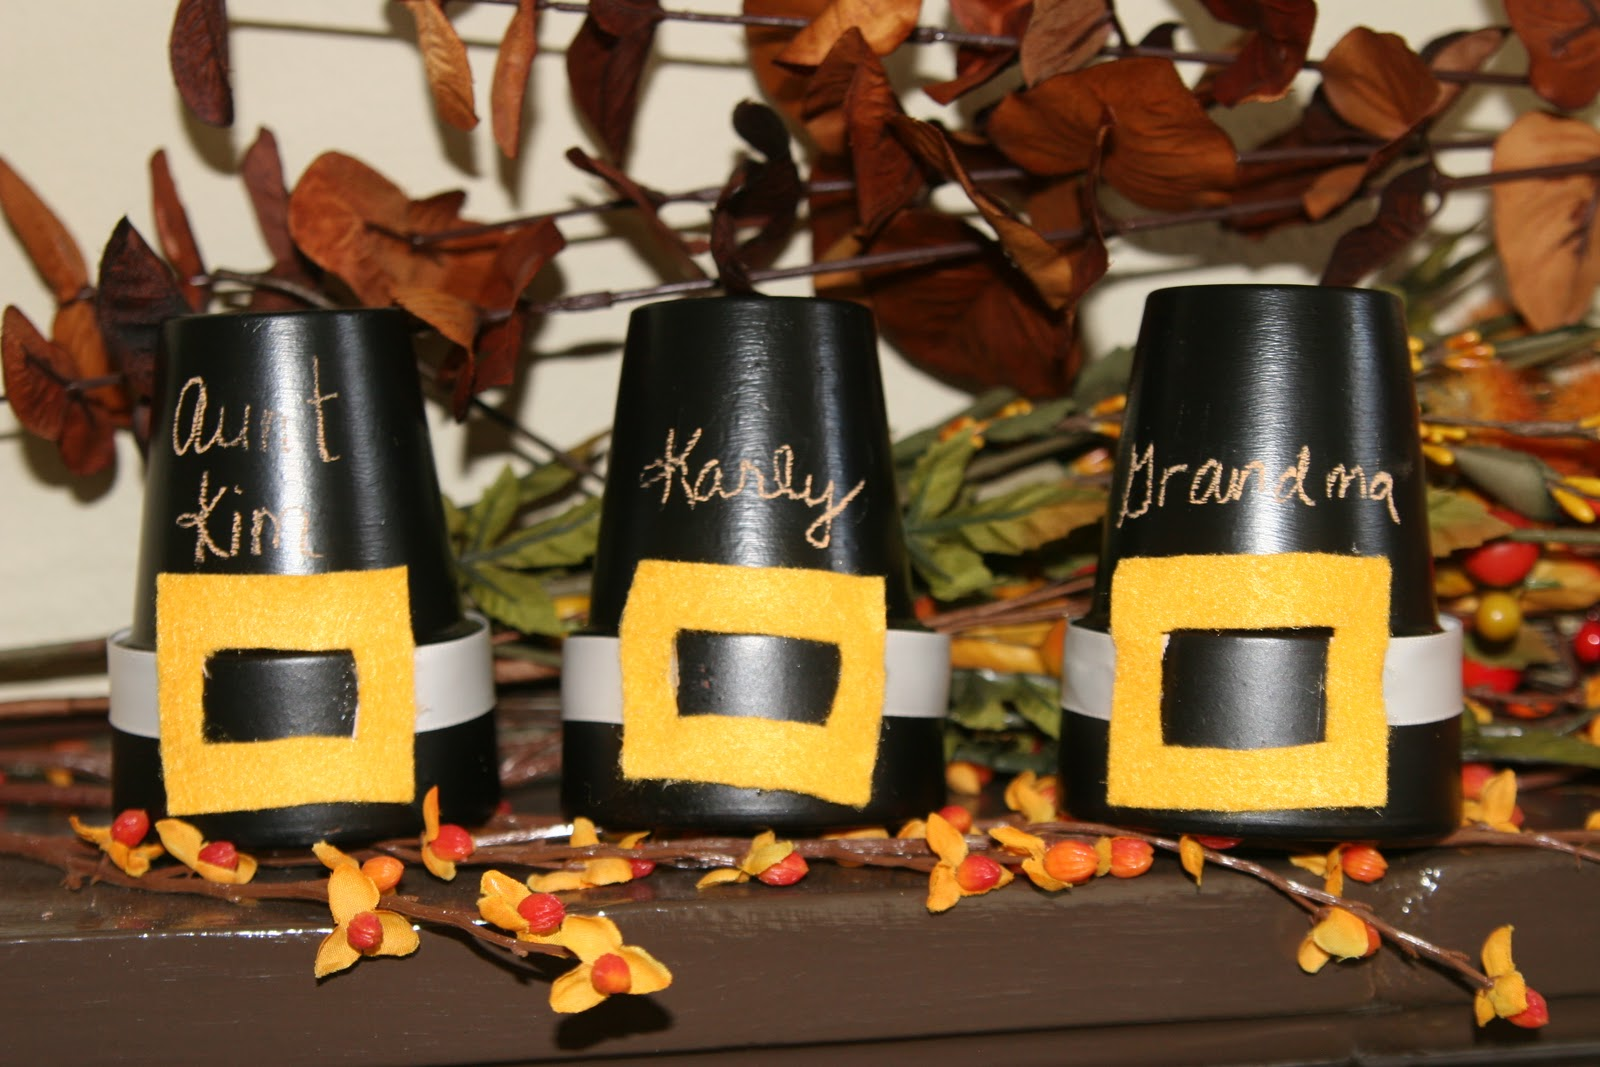 My creative way diy thanksgiving place card ideas for Diy thanksgiving table place cards